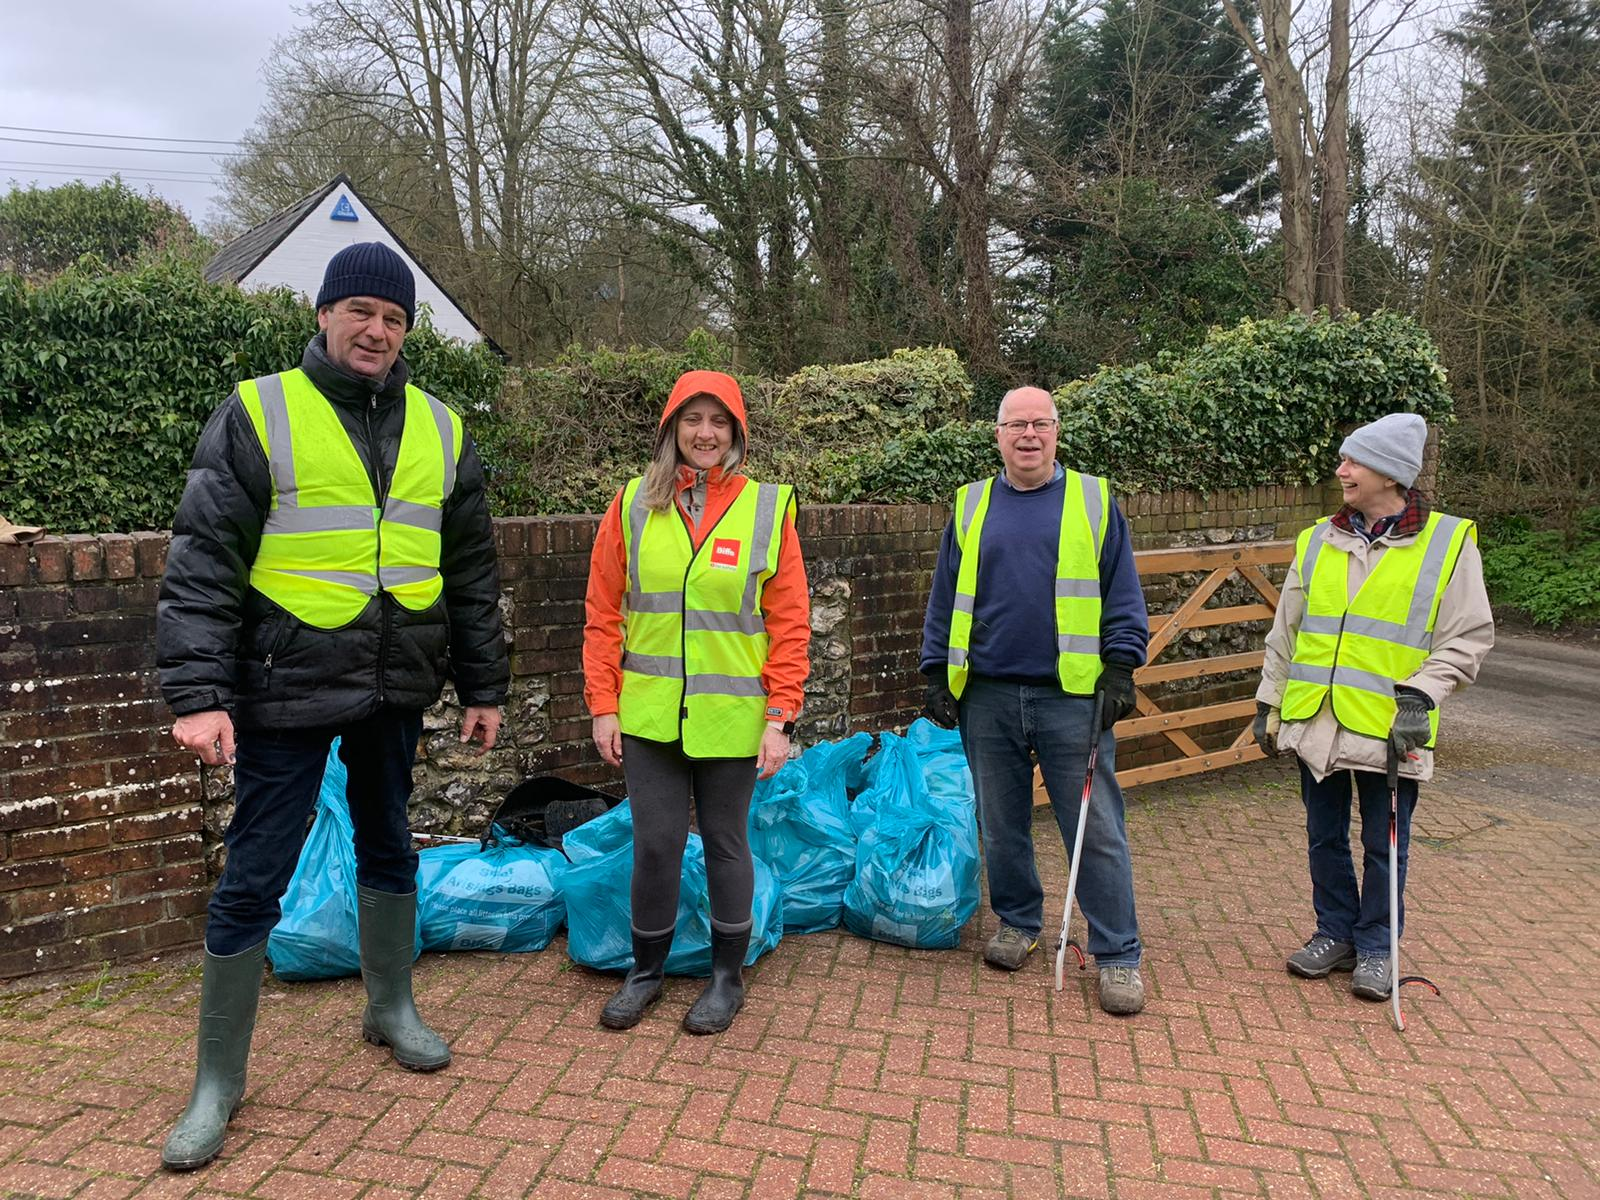 Litter pick up March 15th